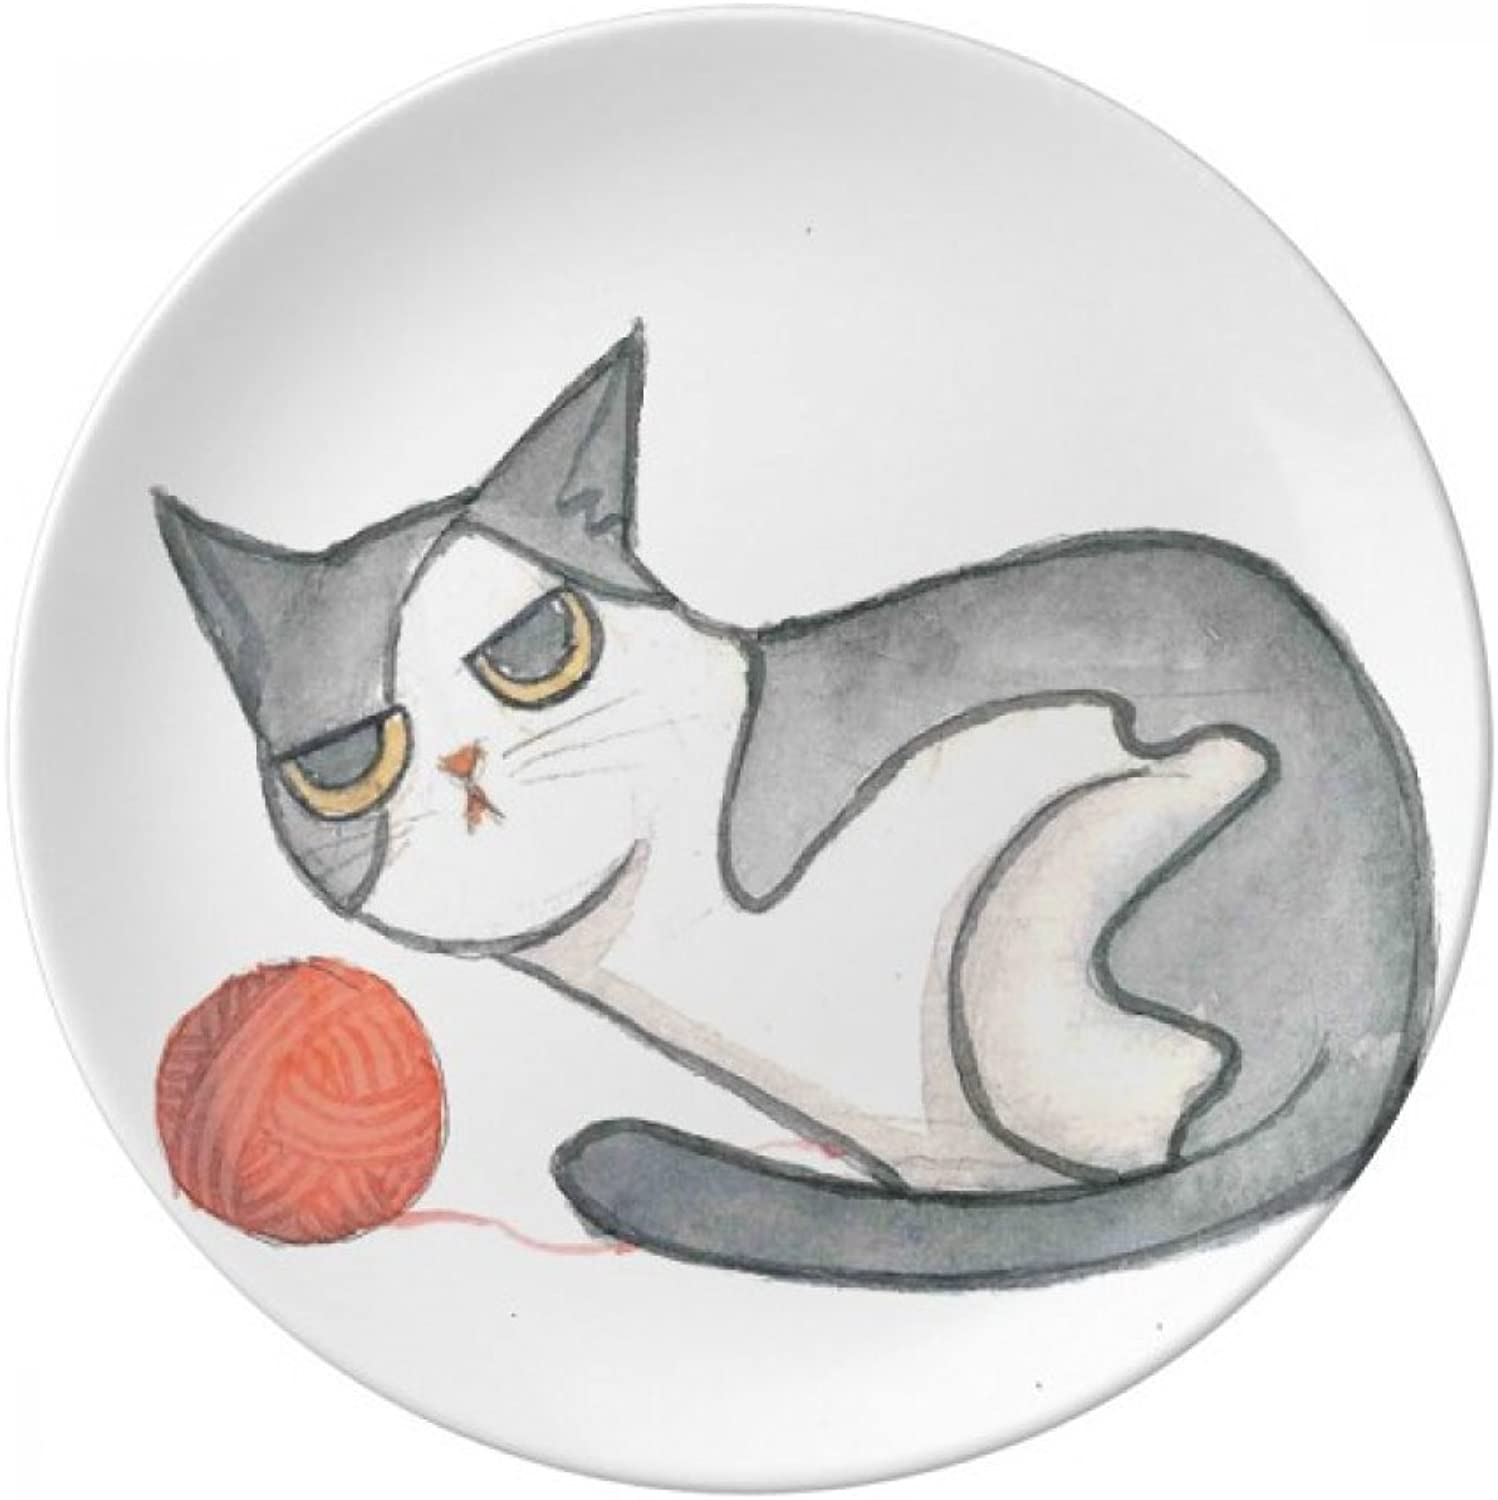 Miaoji Painting Watercolor Puppet Cat Decorative Porcelain Dessert Plate 10 inch Dinner Home Gift